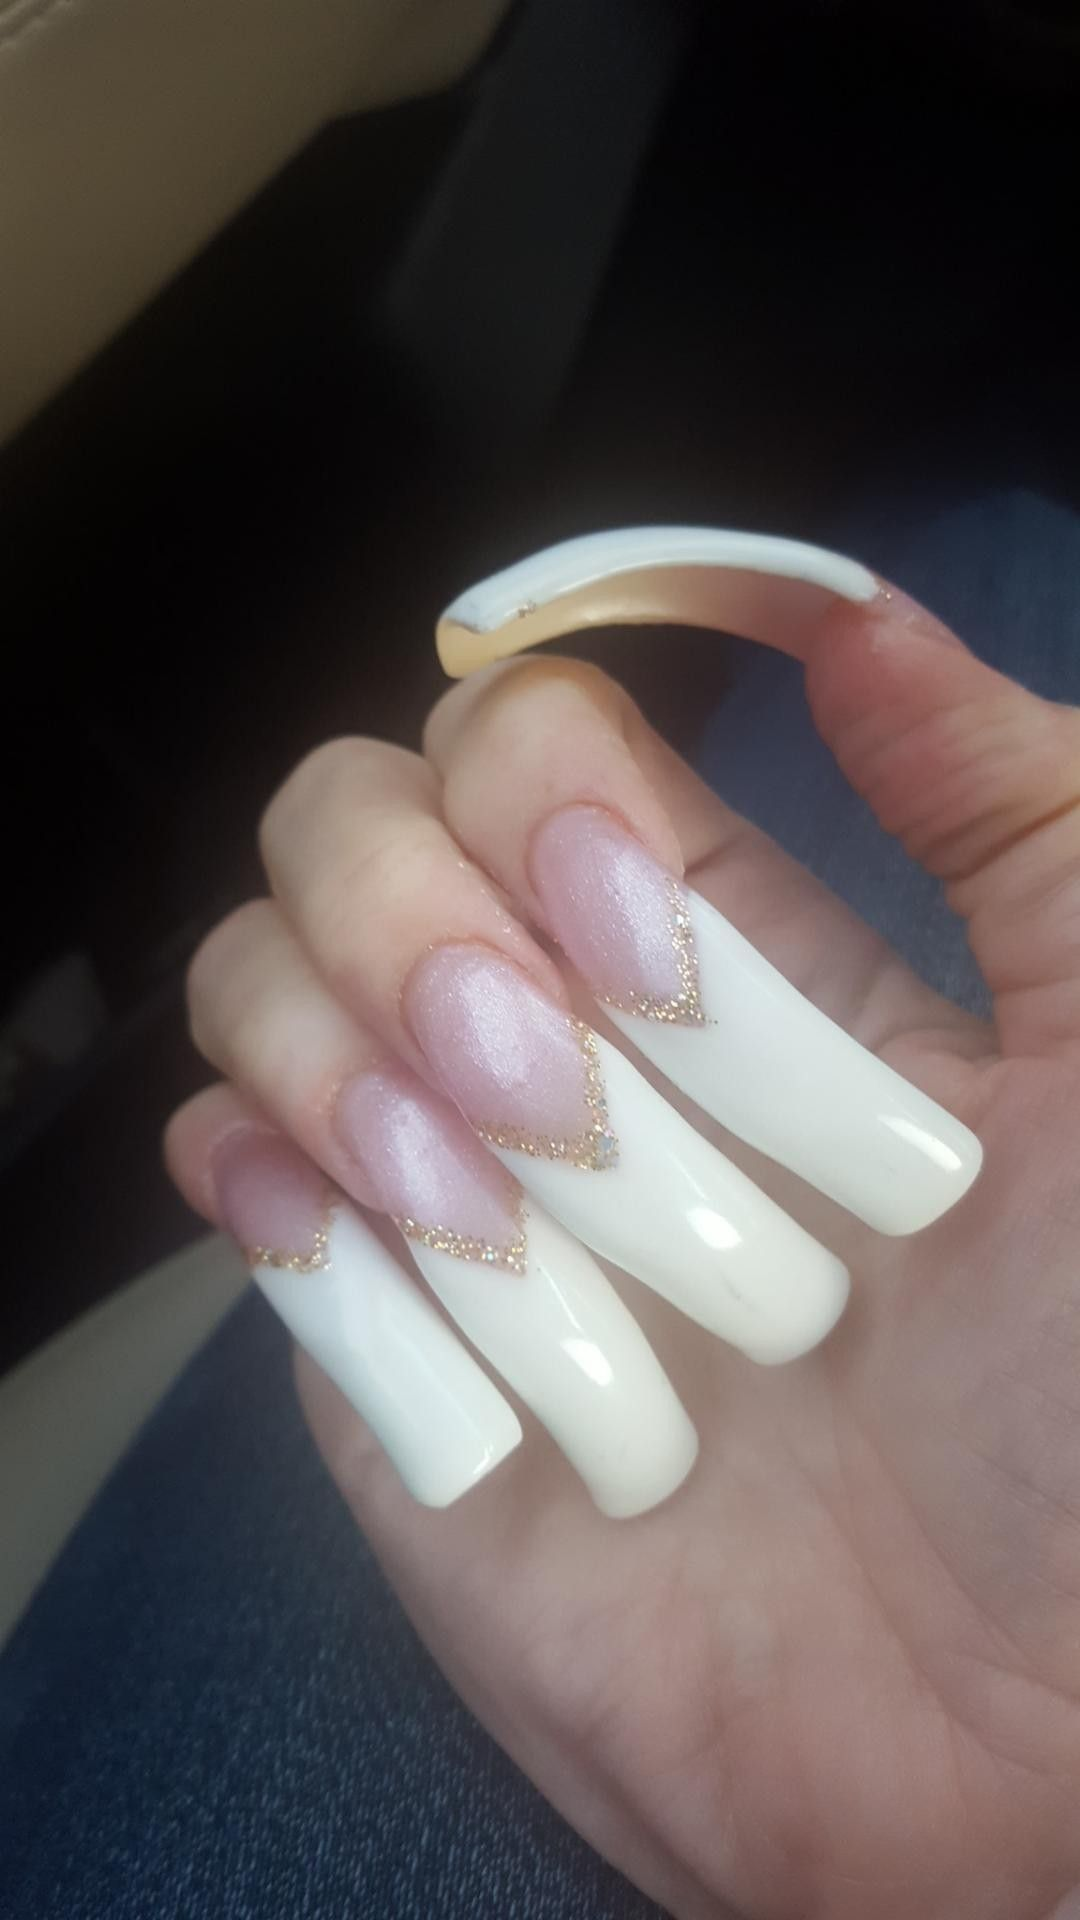 Pin By Arrkangel On Curved Nails Curved Nails Long Fingernails Long Nails